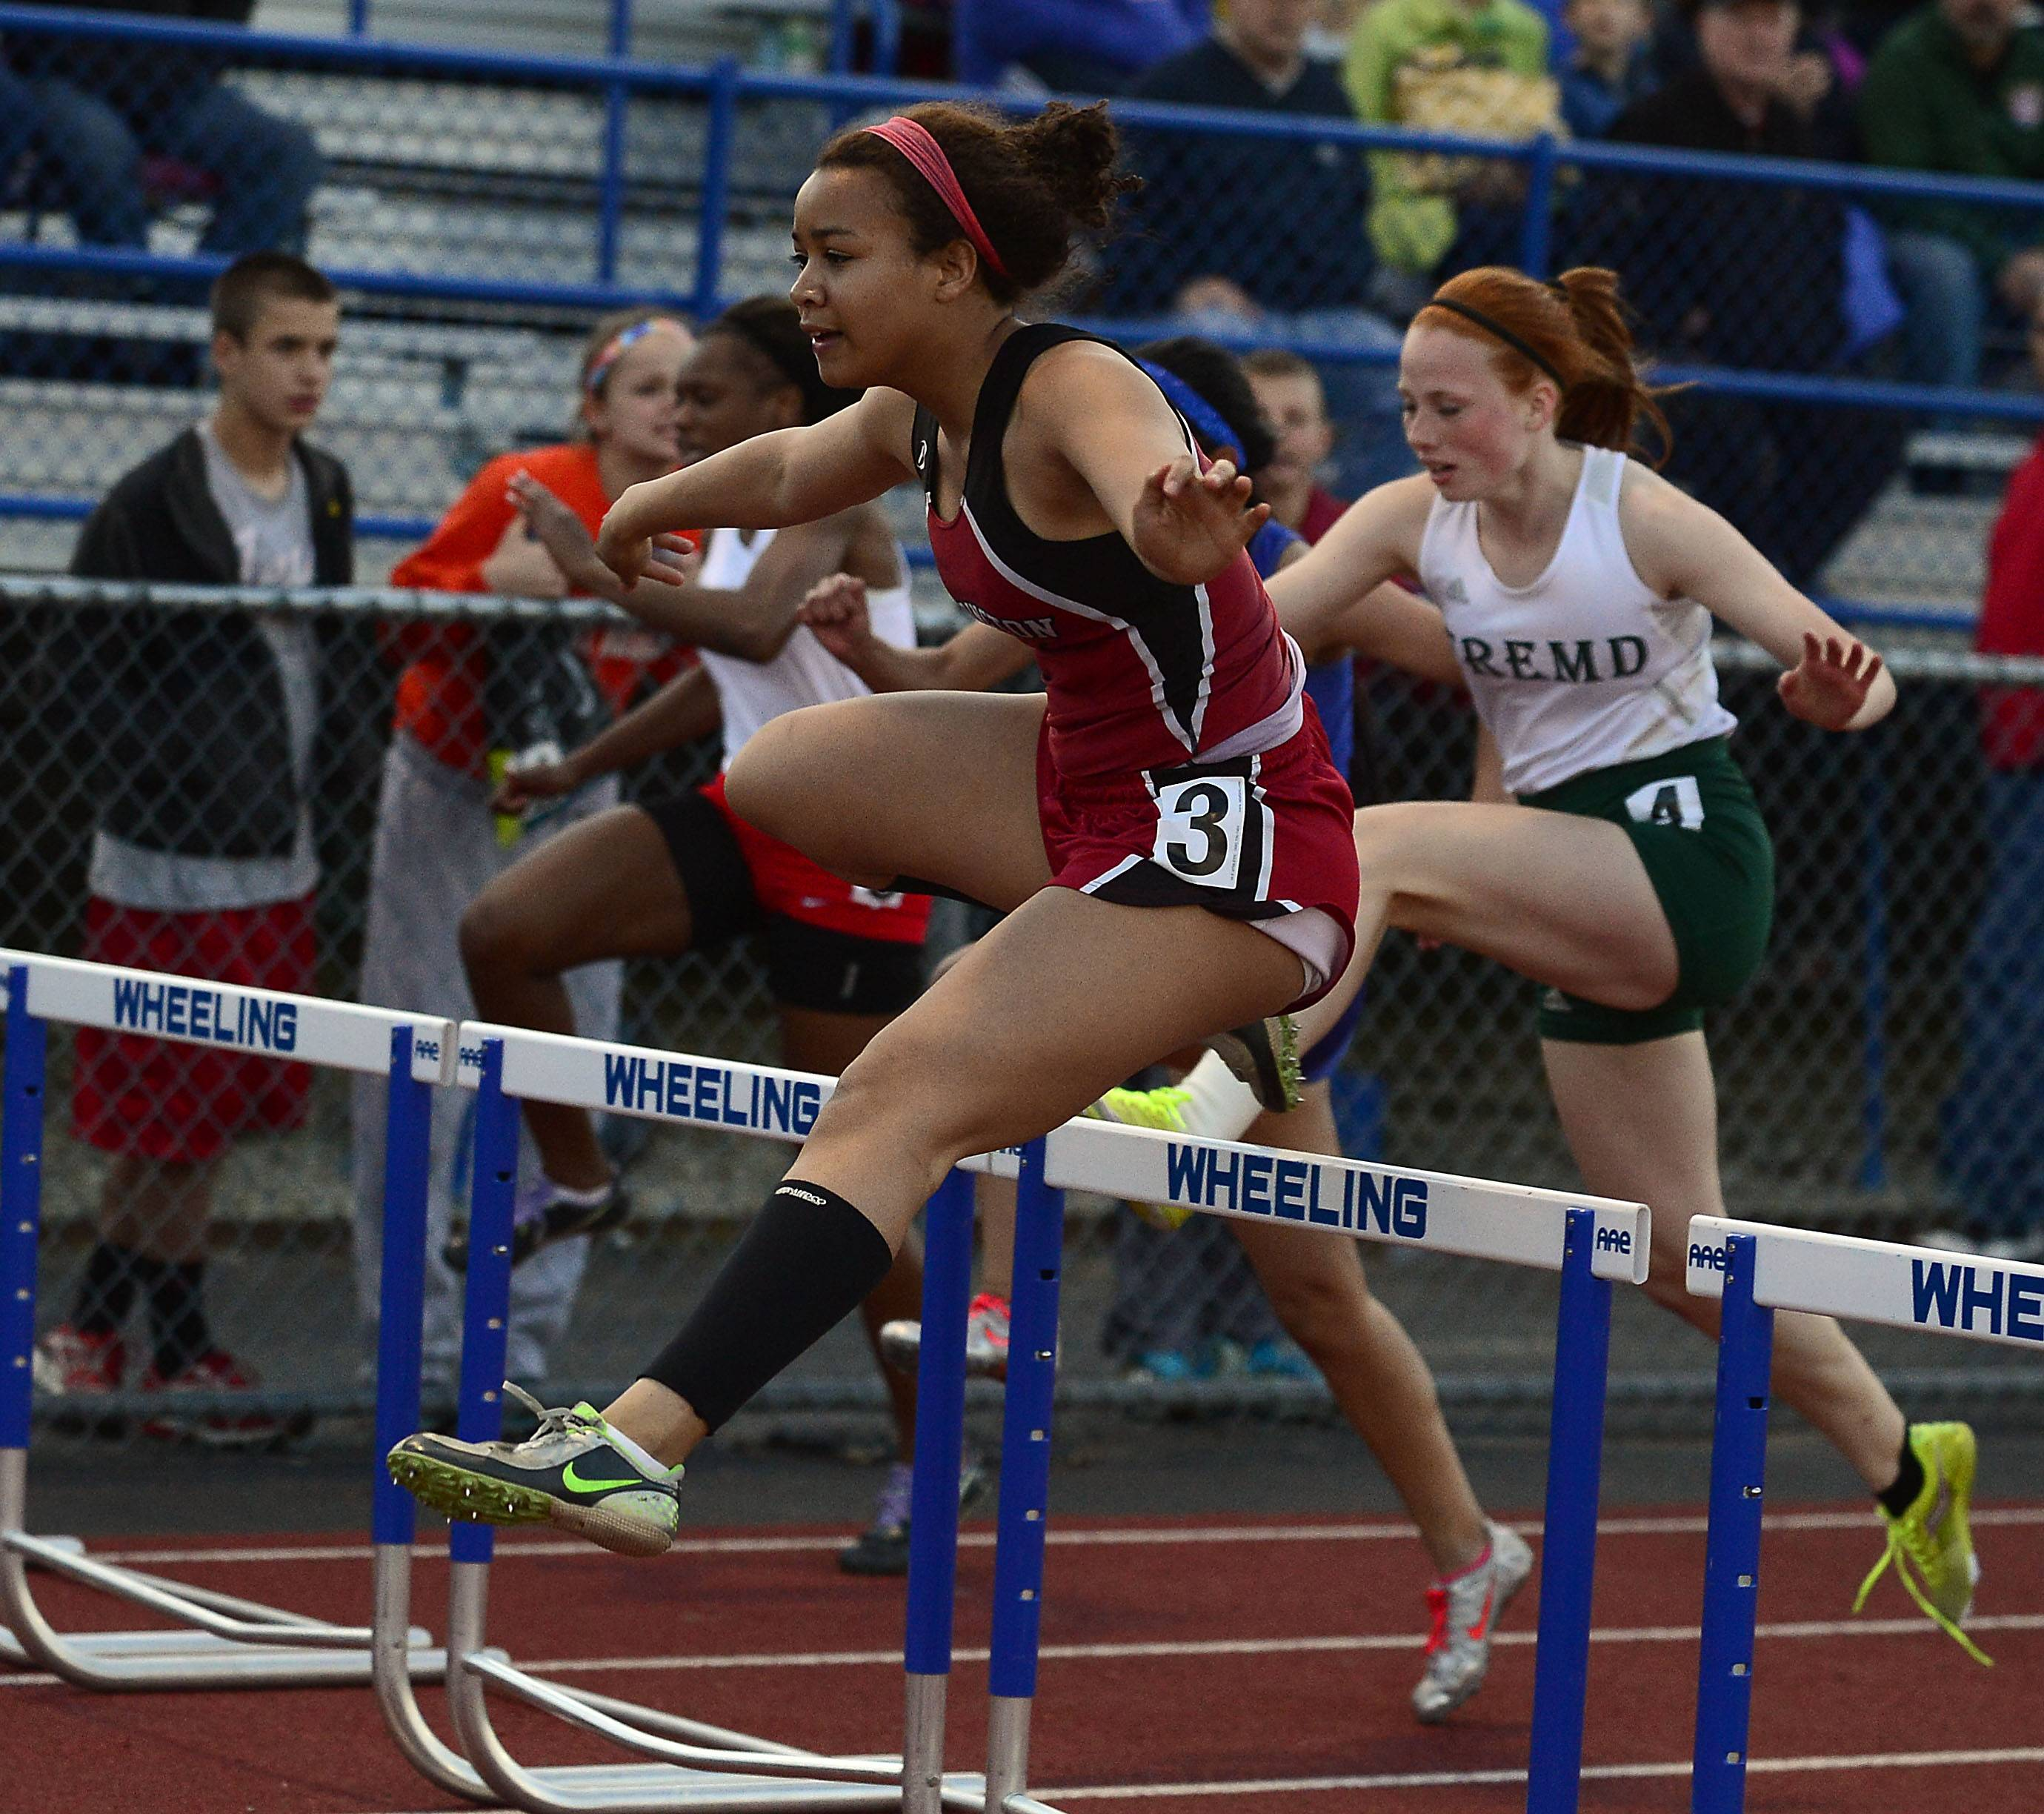 Joyce Taylor of Barrington competes in the 100-meter hurdles during the MSL meet at Wheeling on Friday.